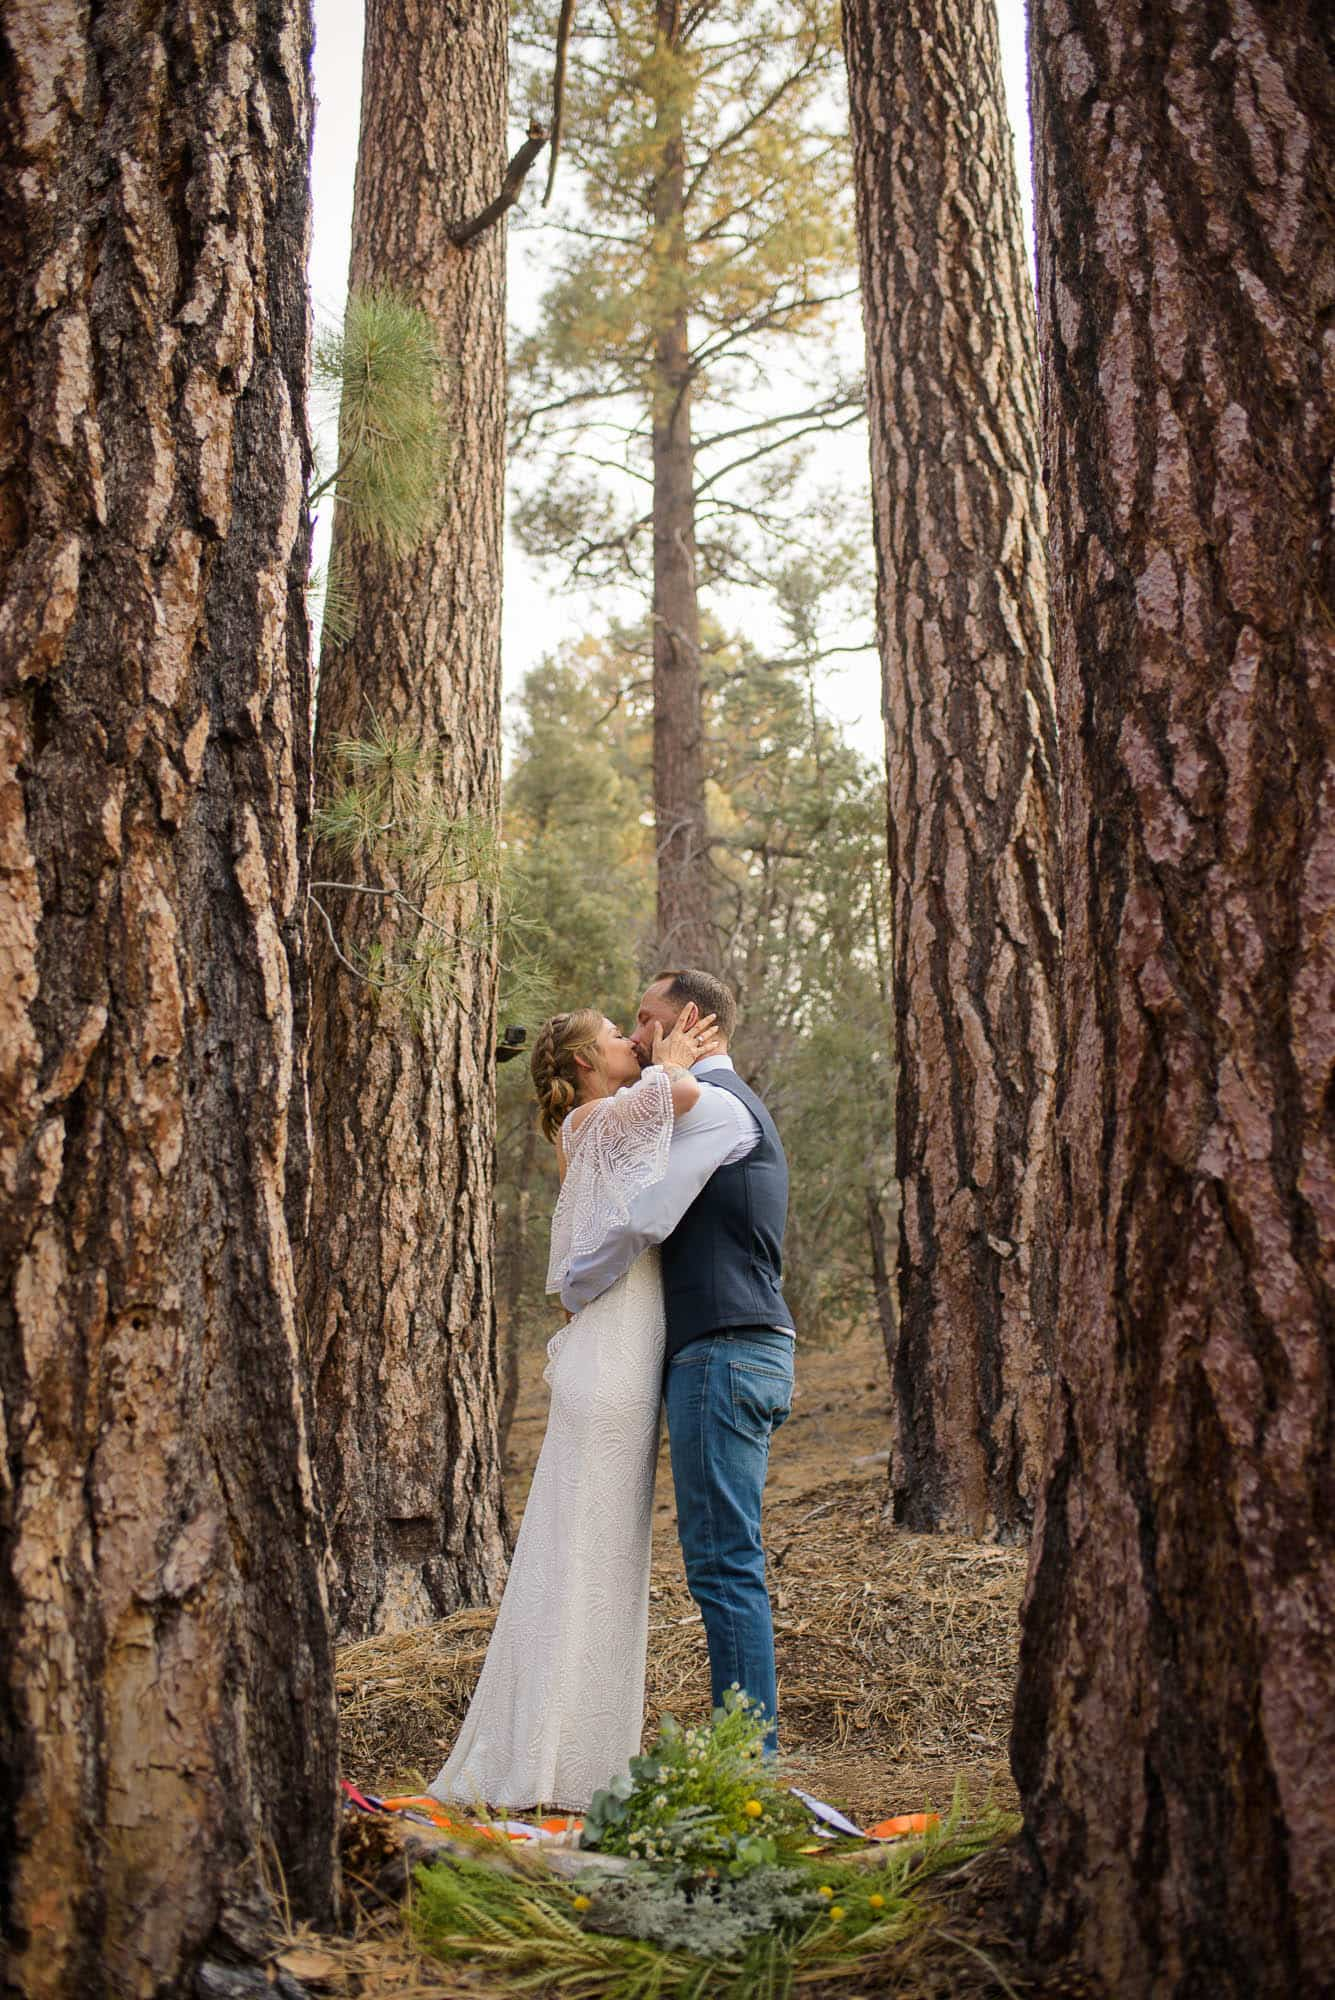 Alan & Heidi elopement big bear